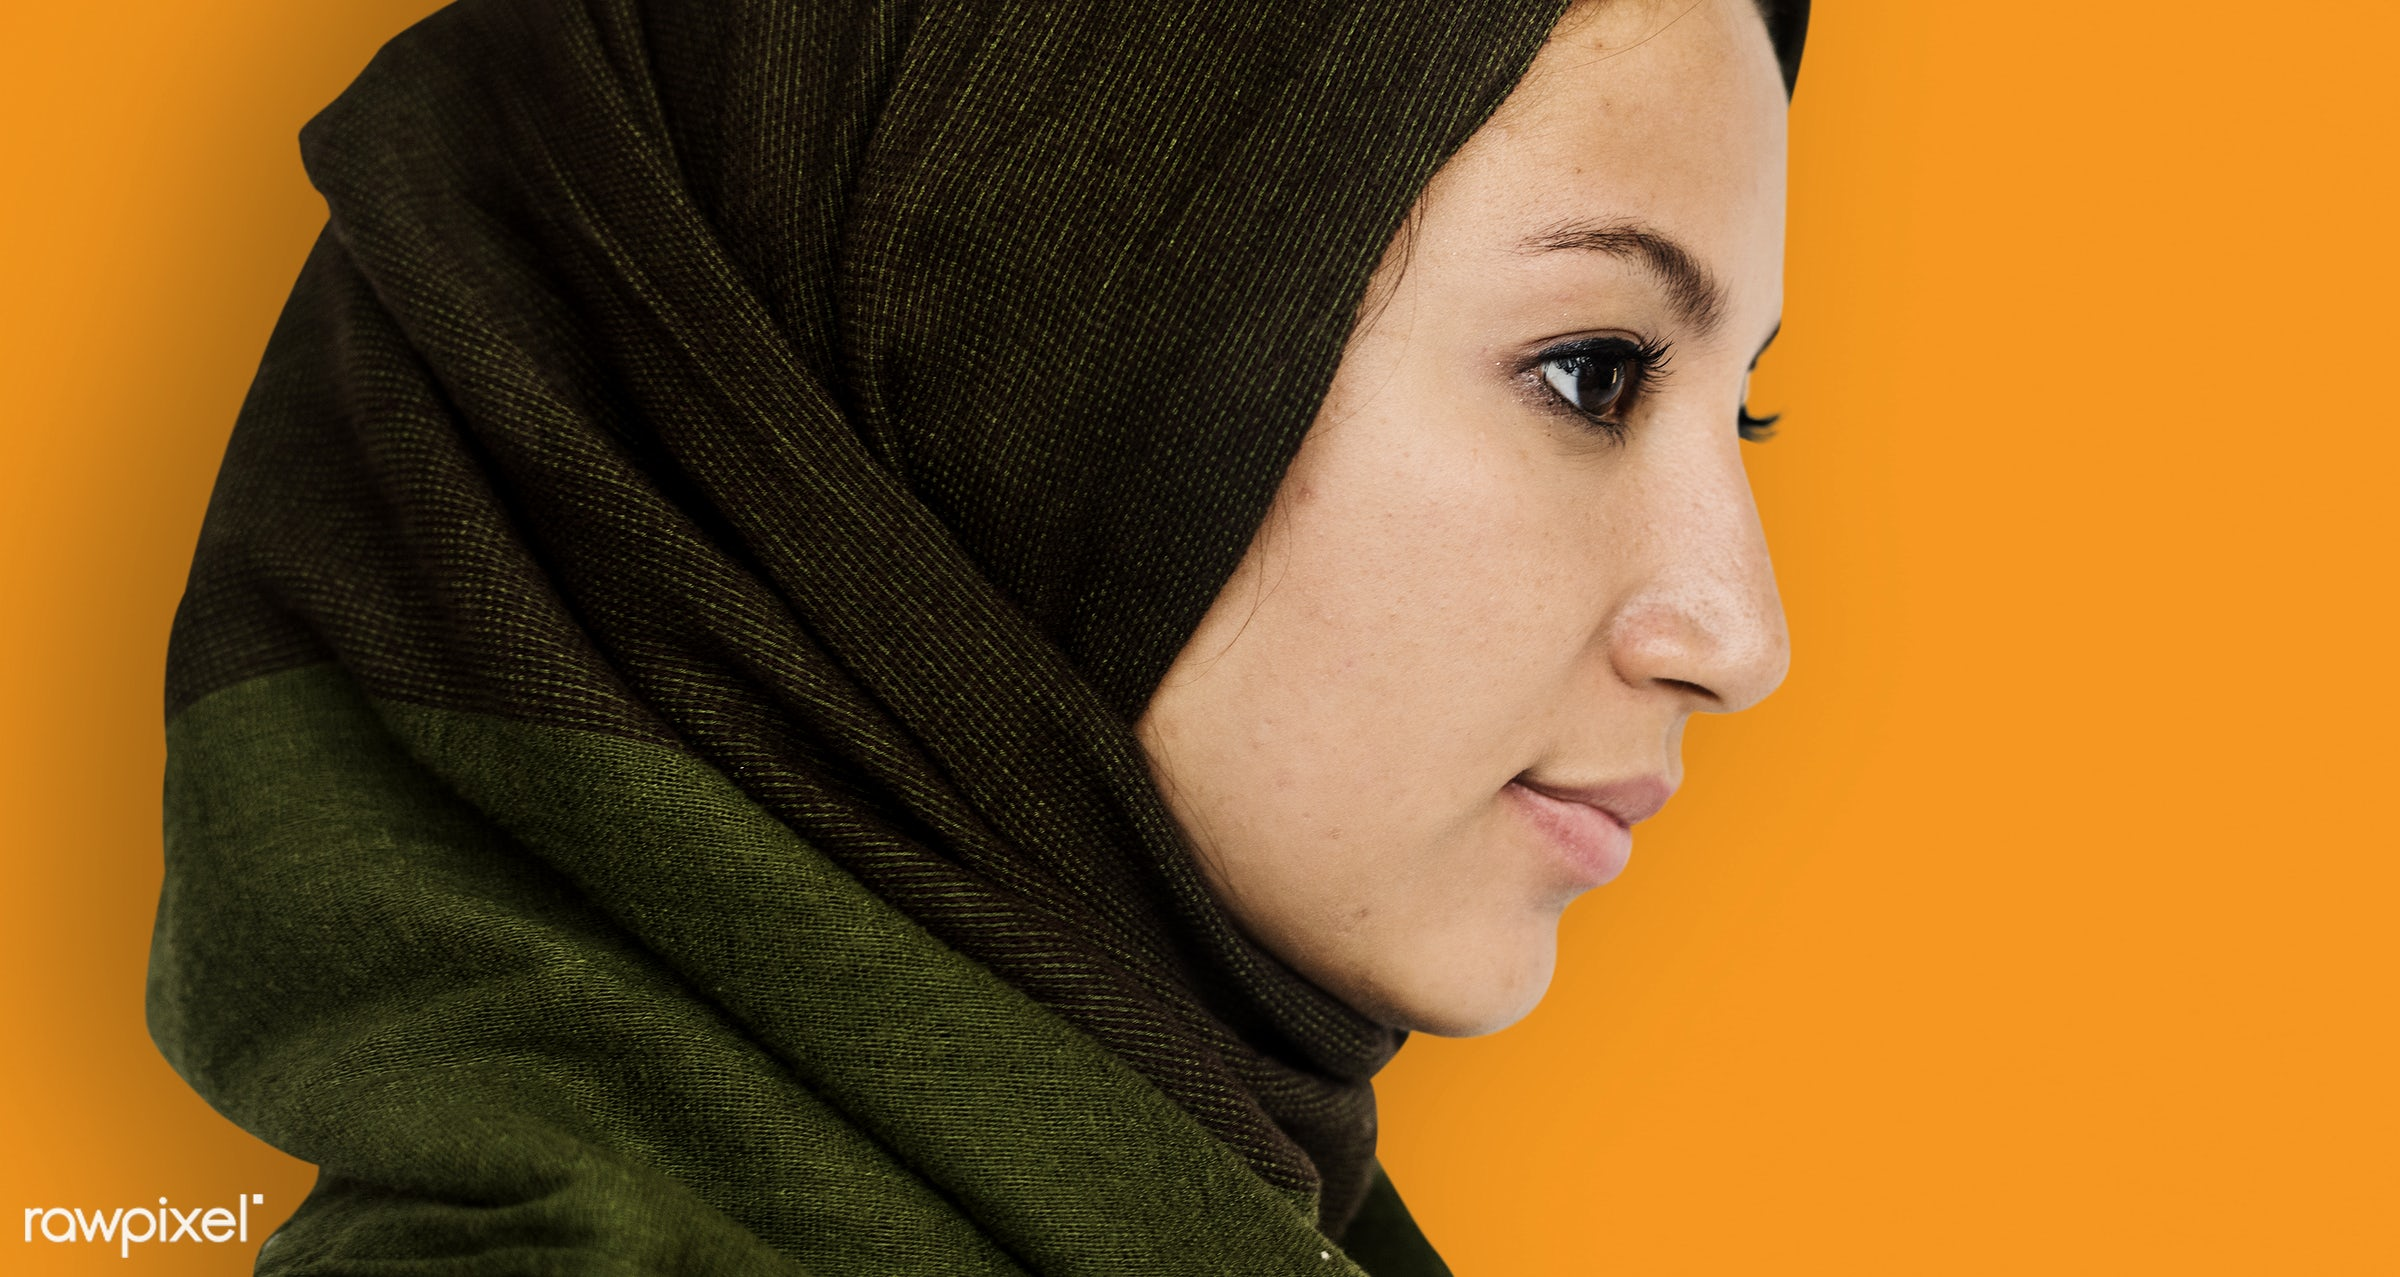 cornville muslim personals Welcome to lovehabibi - we've helped thousands of arab and muslim singles worldwide find love and someone to share their lives with as one of the leading arab dating and muslim dating websites, we're committed to helping our members find the best possible matches.